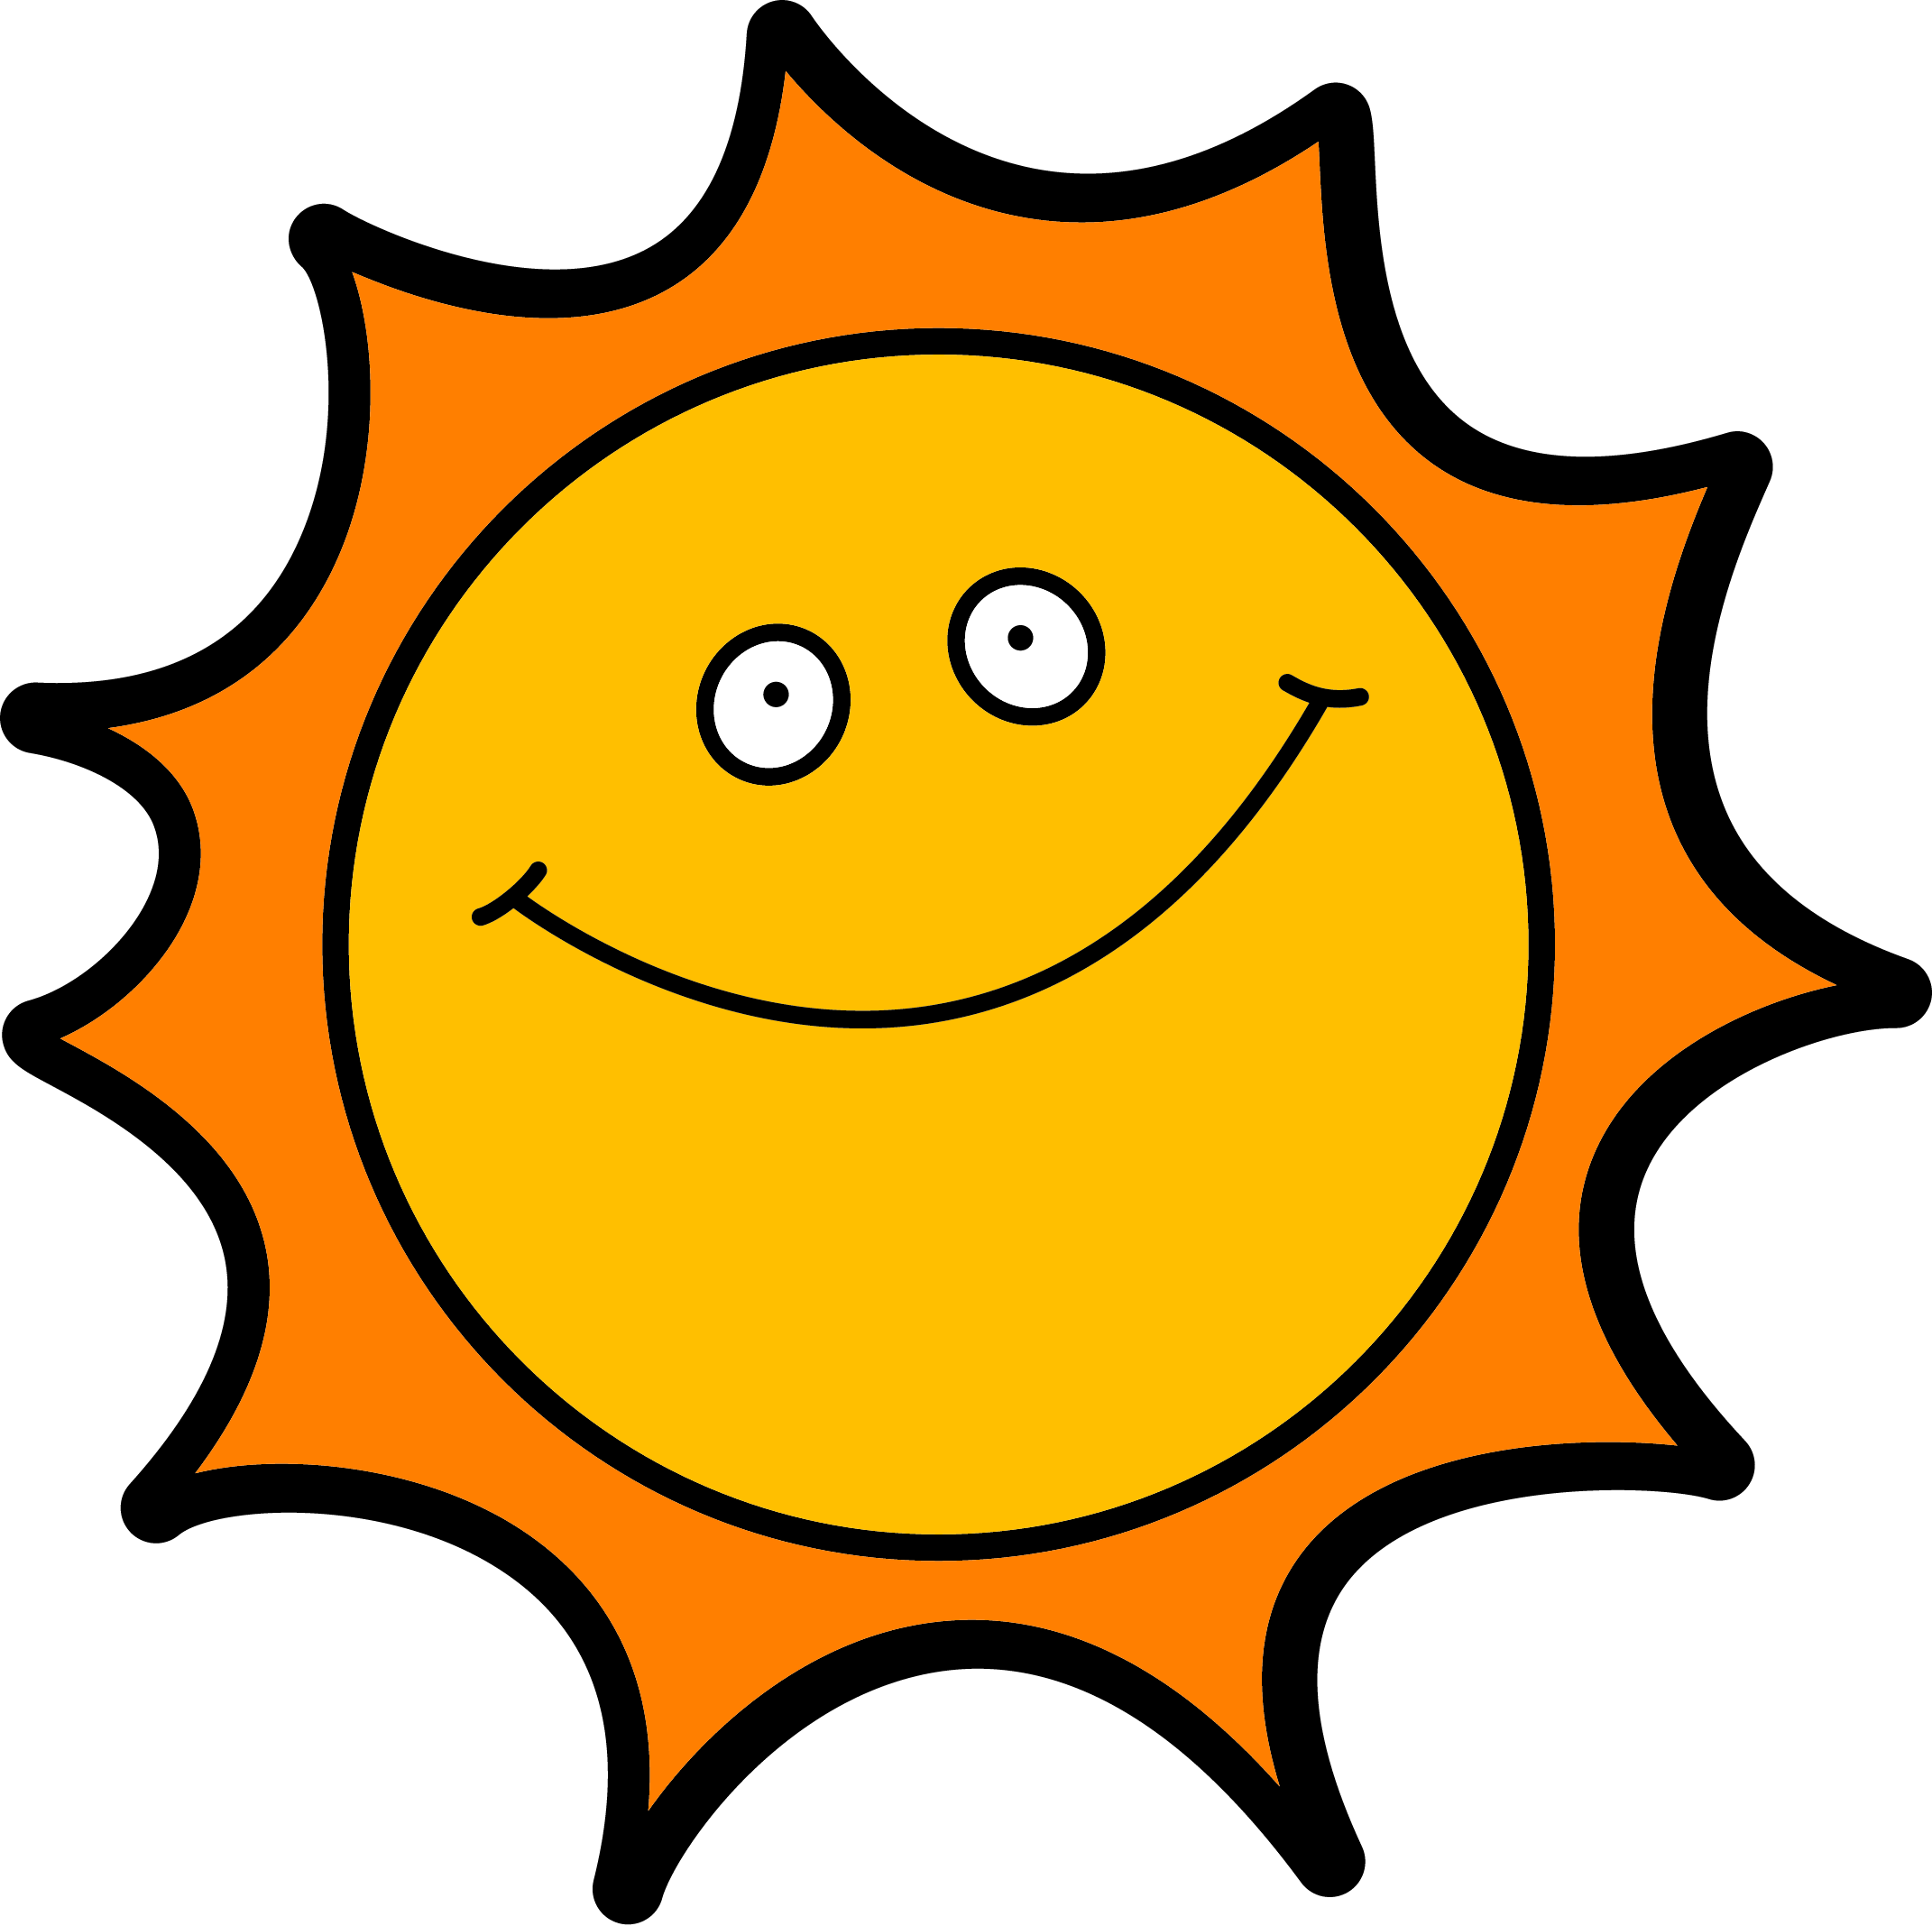 Clipart sunshine cool, Clipart sunshine cool Transparent.